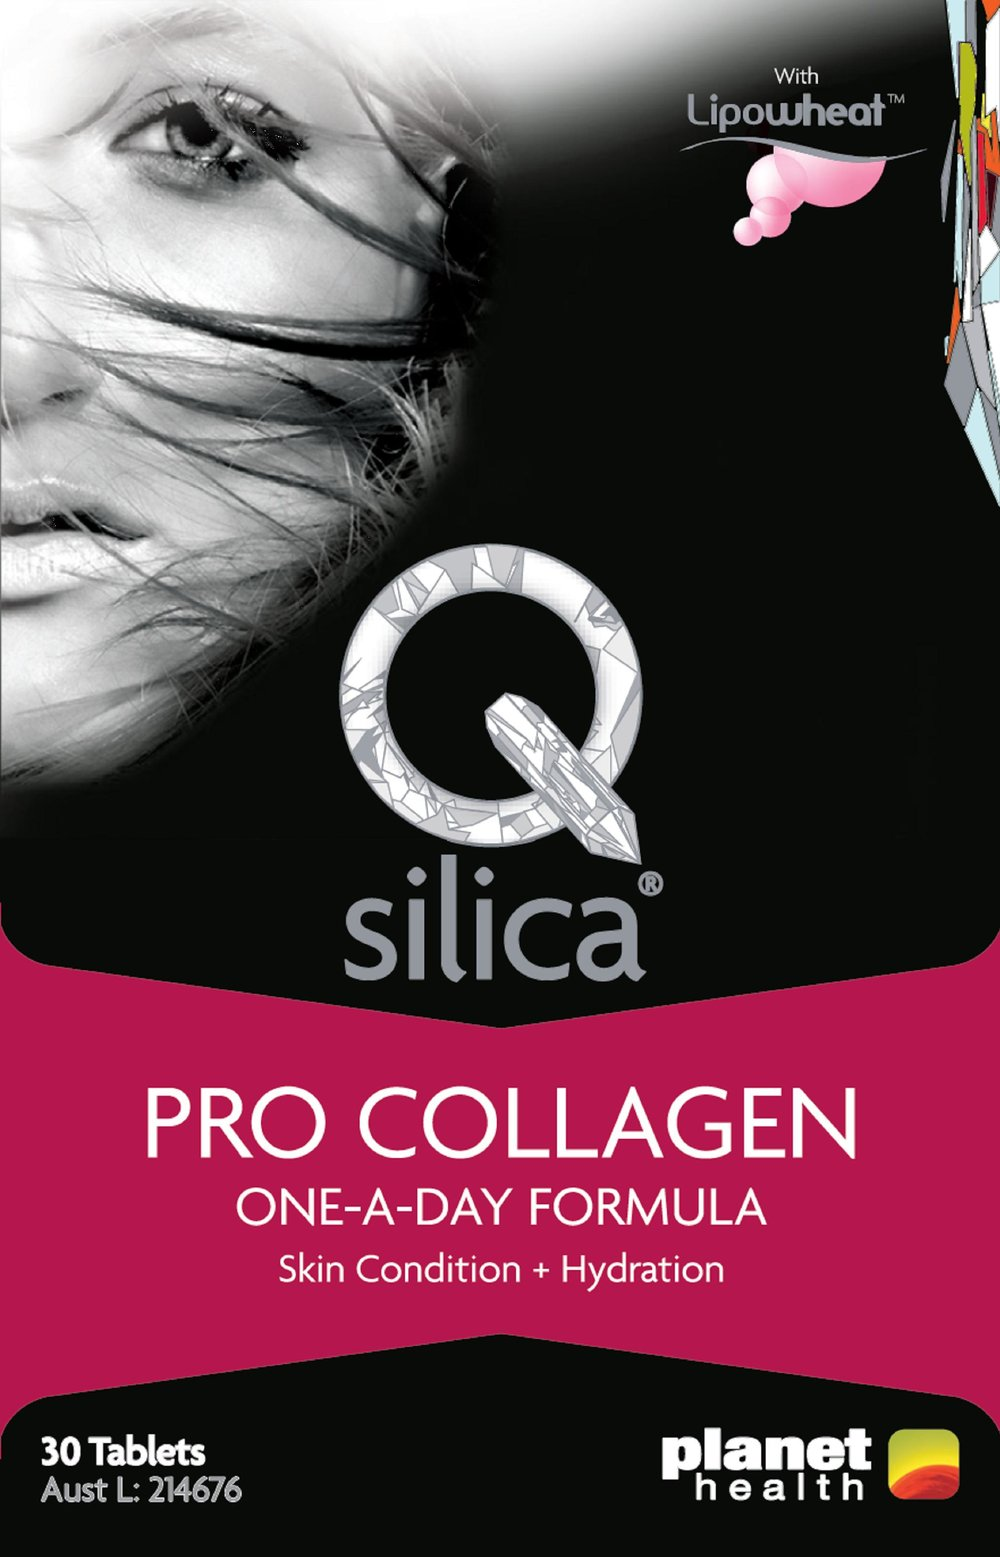 Qsilica Pro Collagen flat HR.jpg